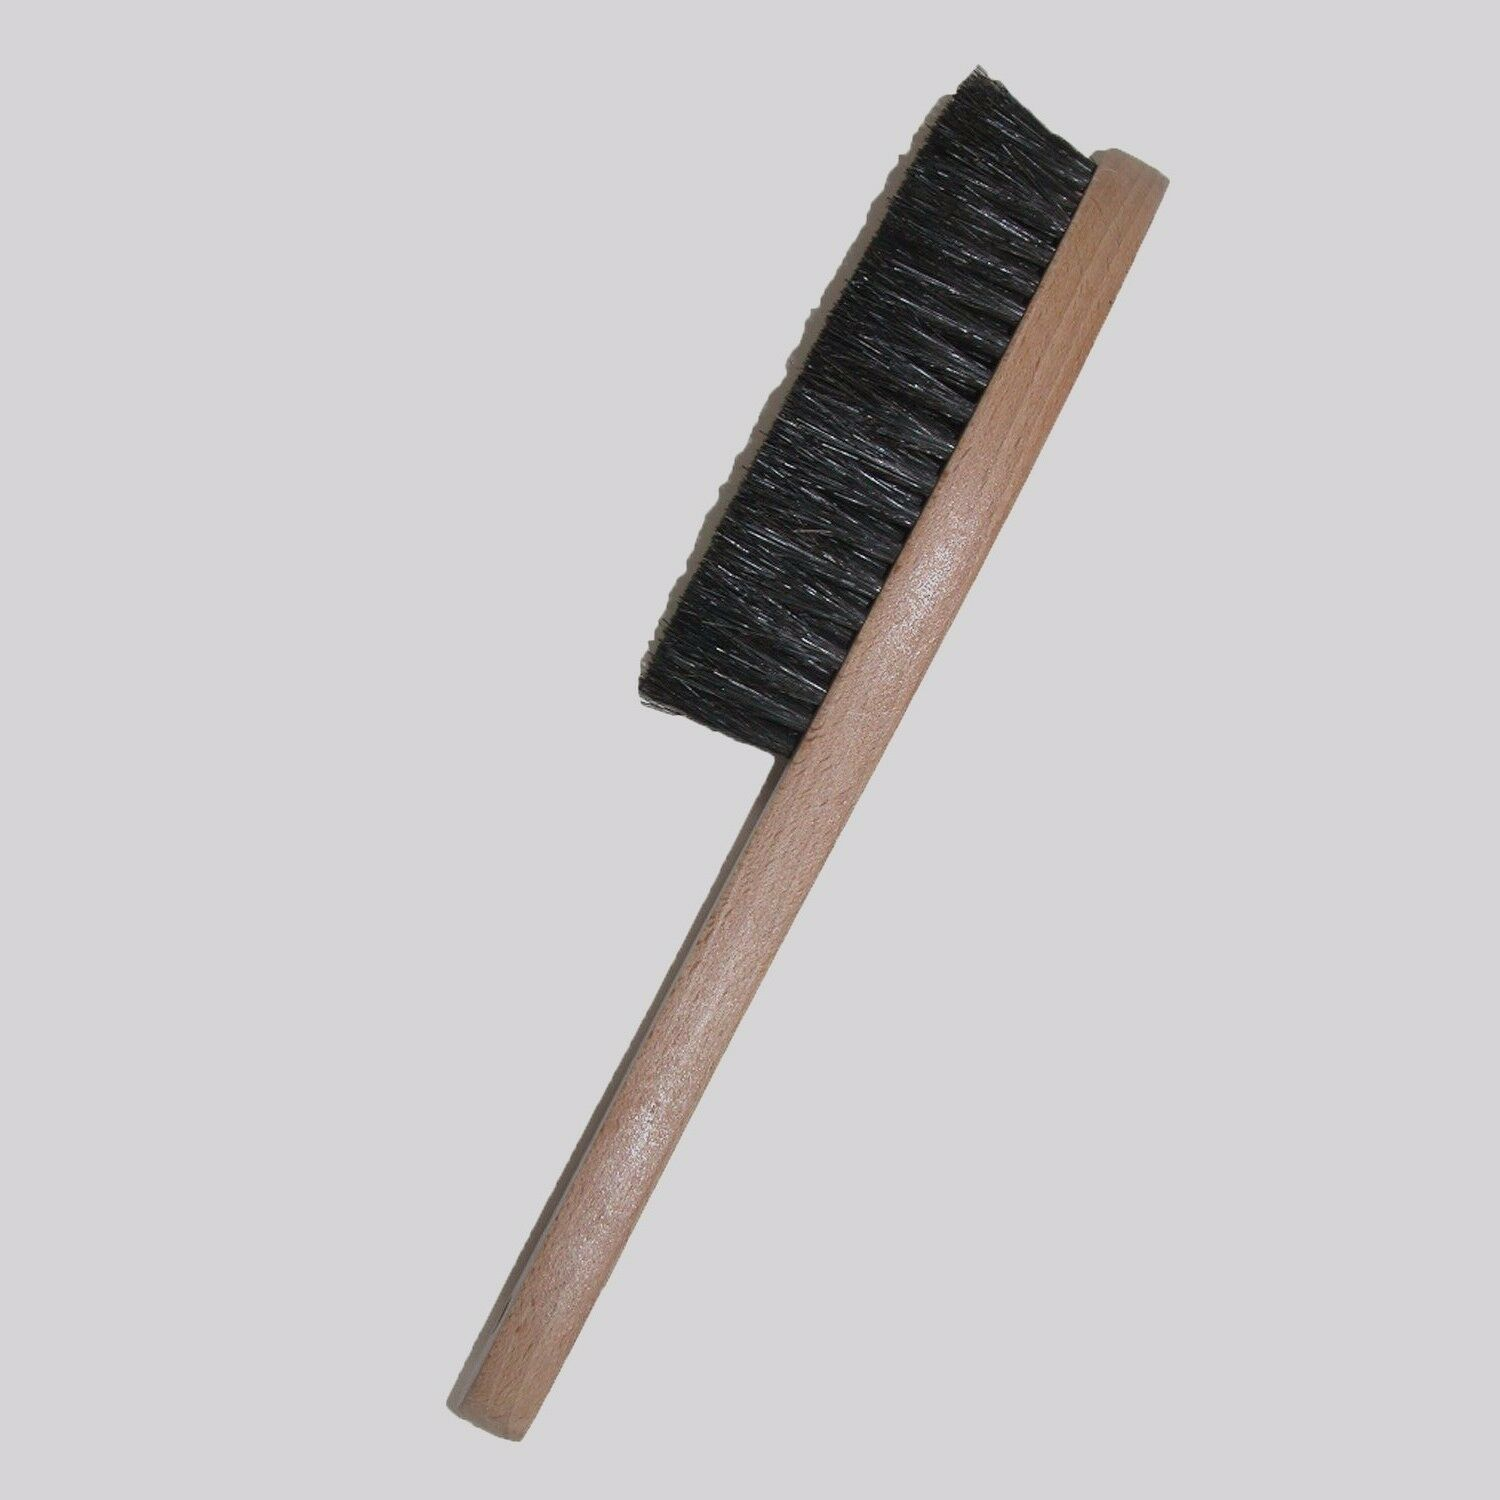 Wooden Hat Brush - Black Horse Hair Bristles on Wood Frame